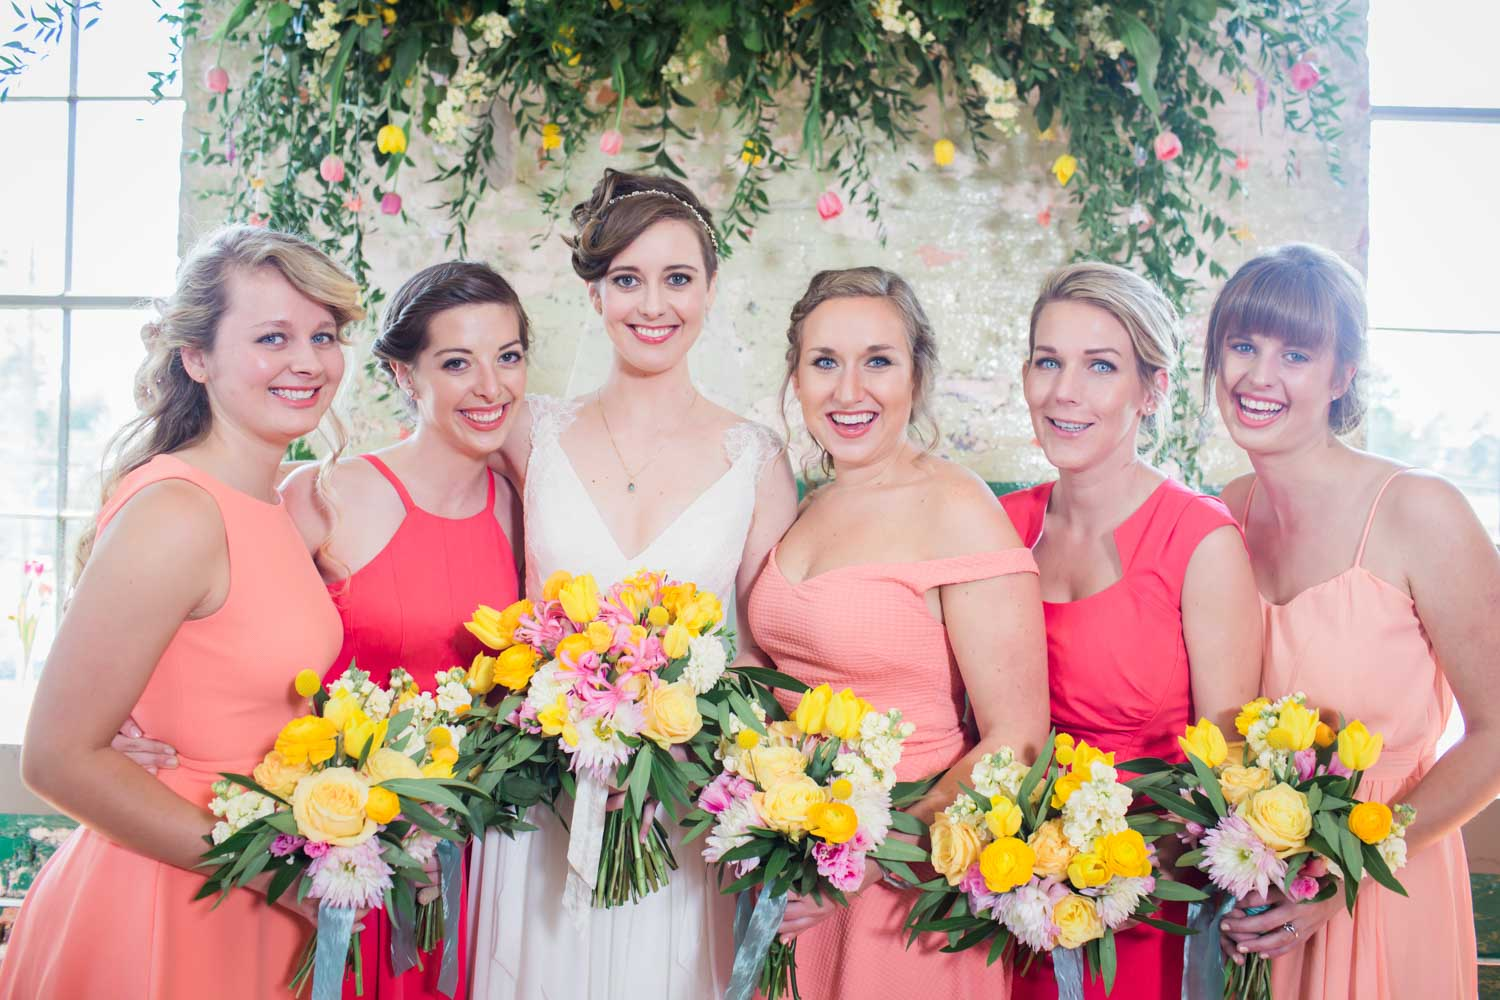 blush-and-pink-and-yellow-bridesmaids-dresses-and-flowers